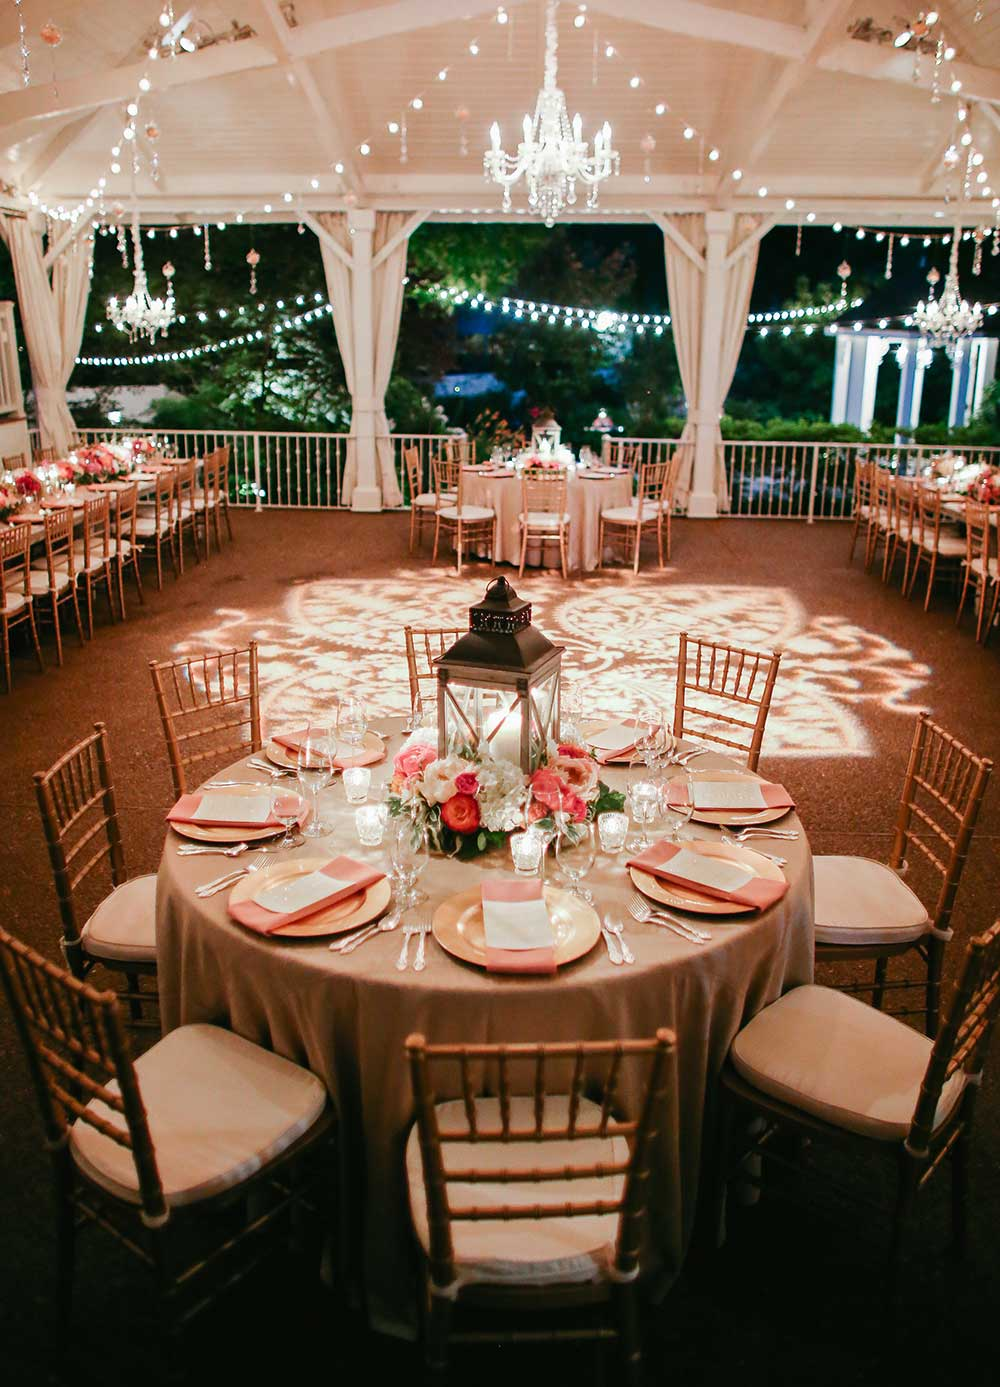 Rustic wedding rentals archives southern events party rental pet friendly junglespirit Image collections